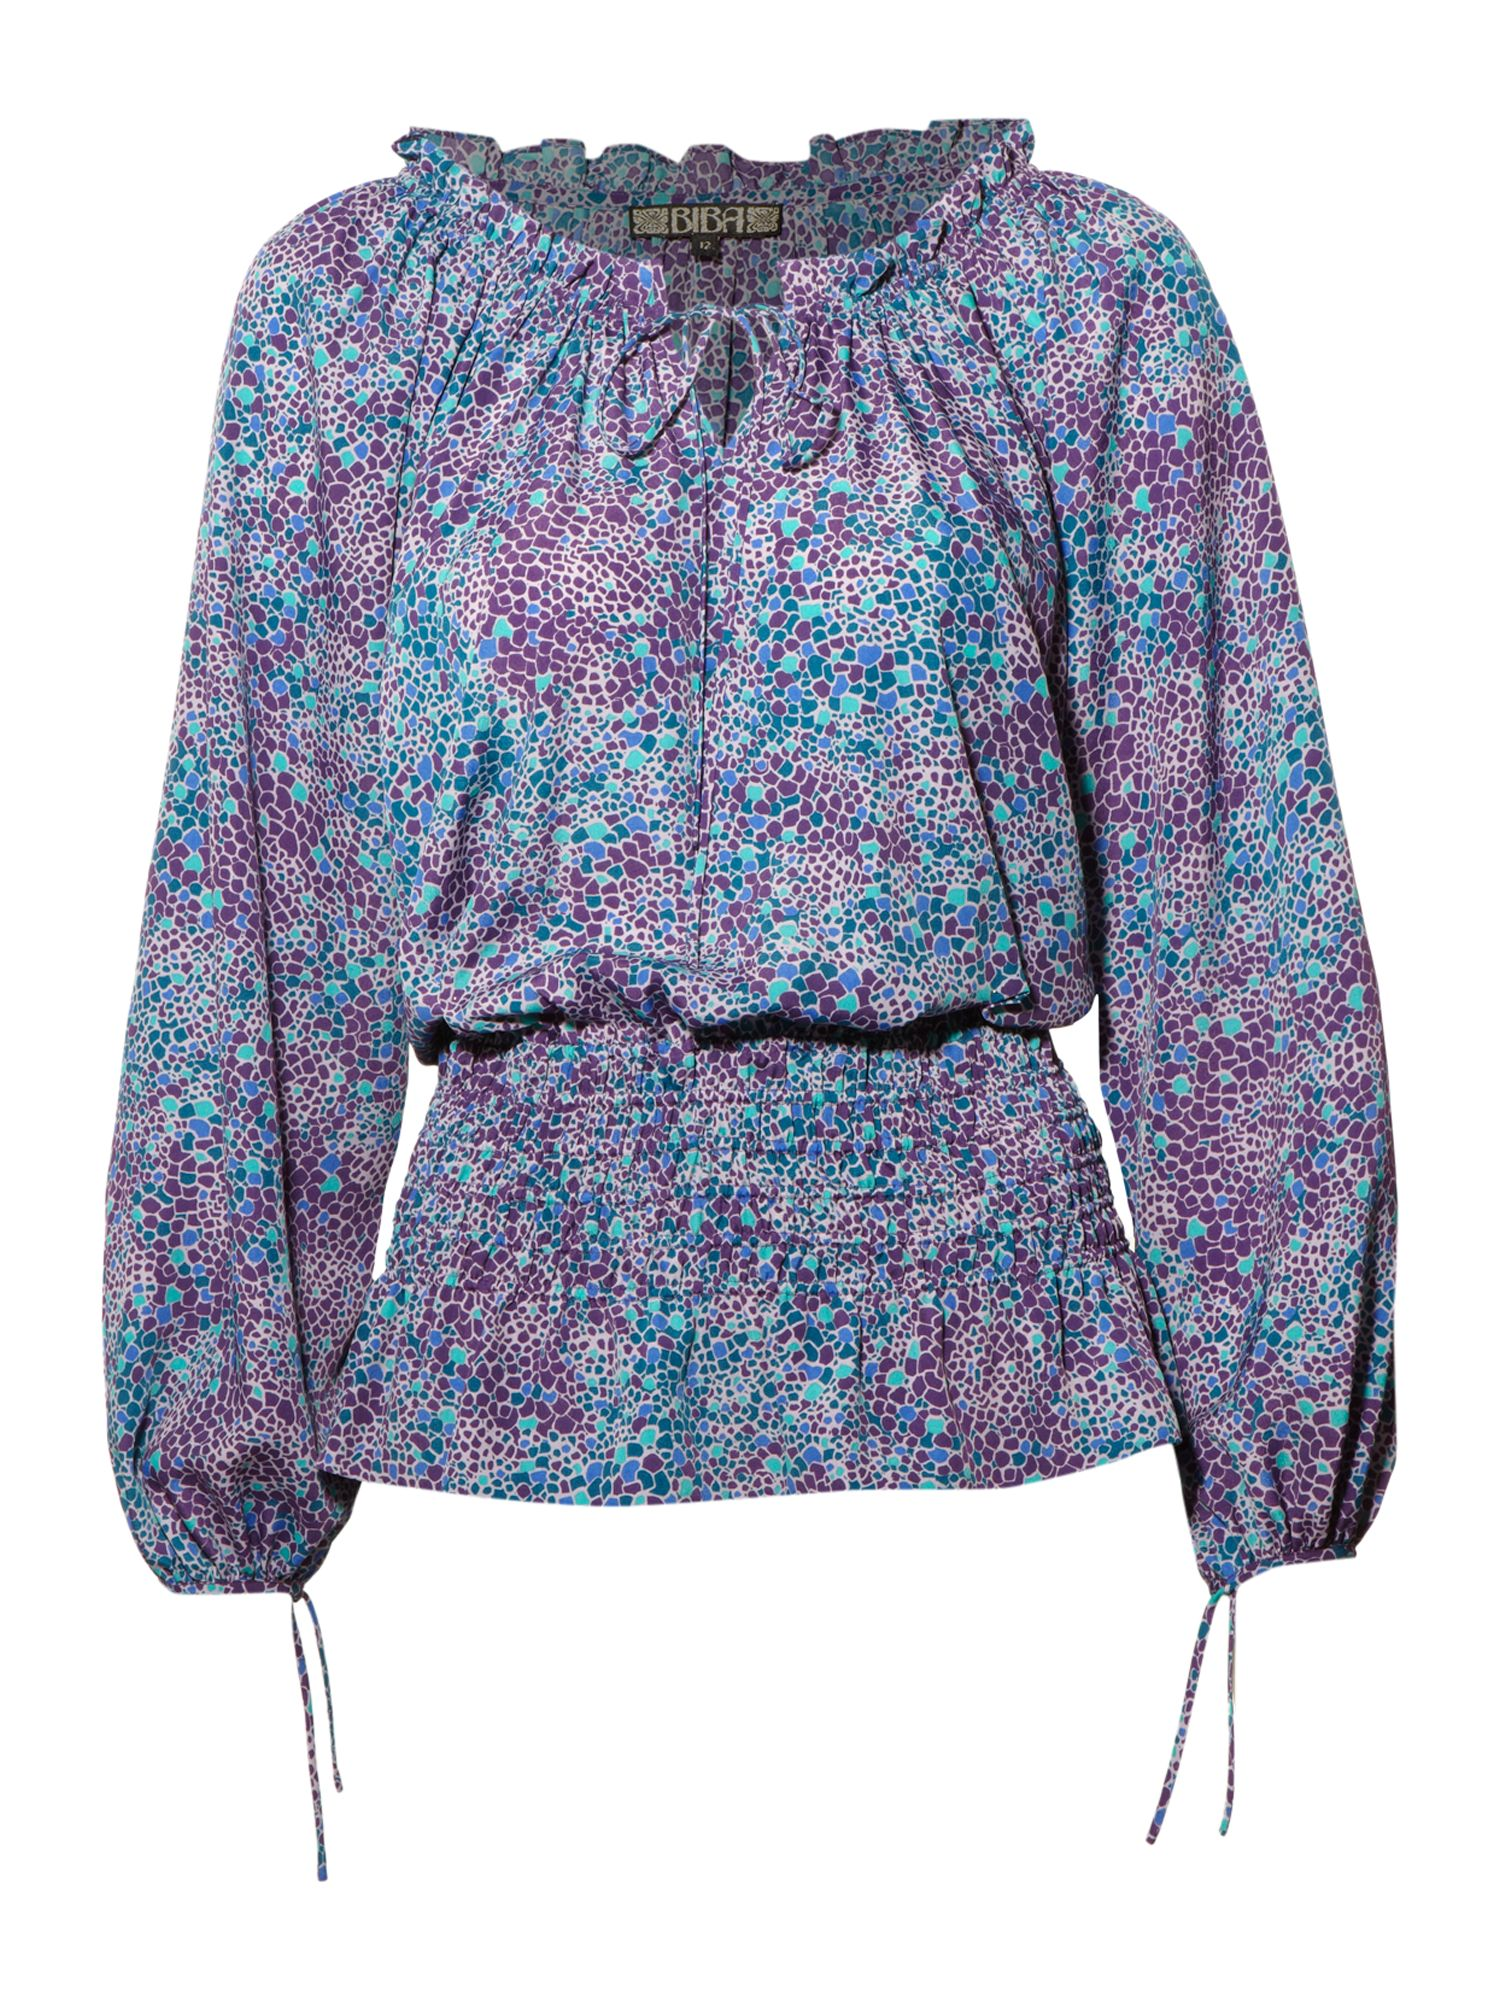 Mosaic print peasant blouse - Multi-Coloured